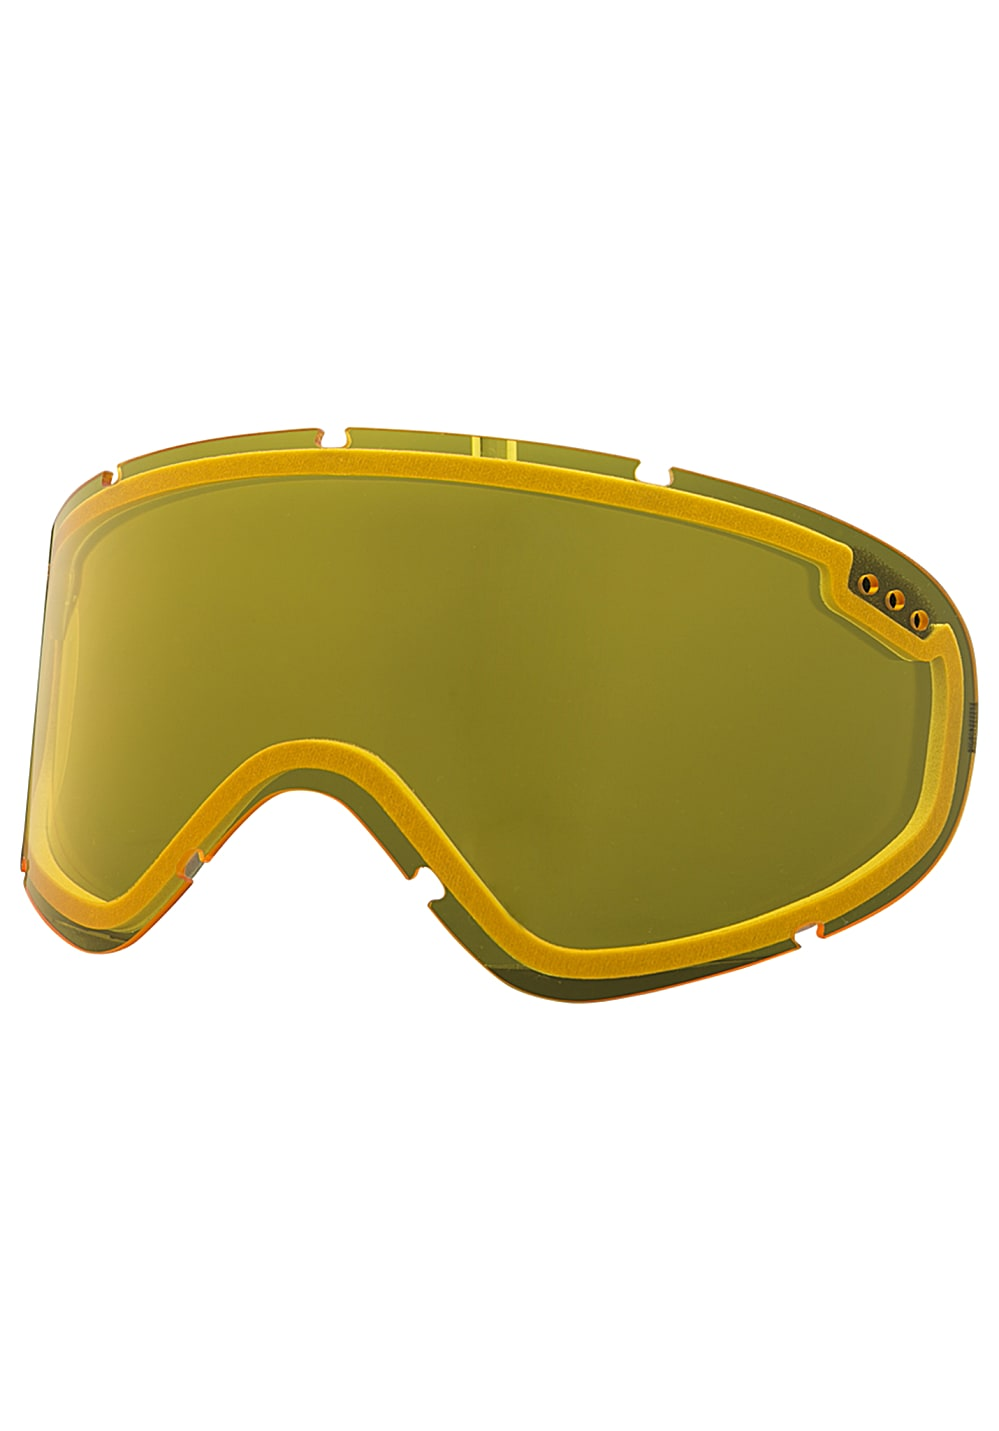 Electric Charger Lens Brille - Gelb